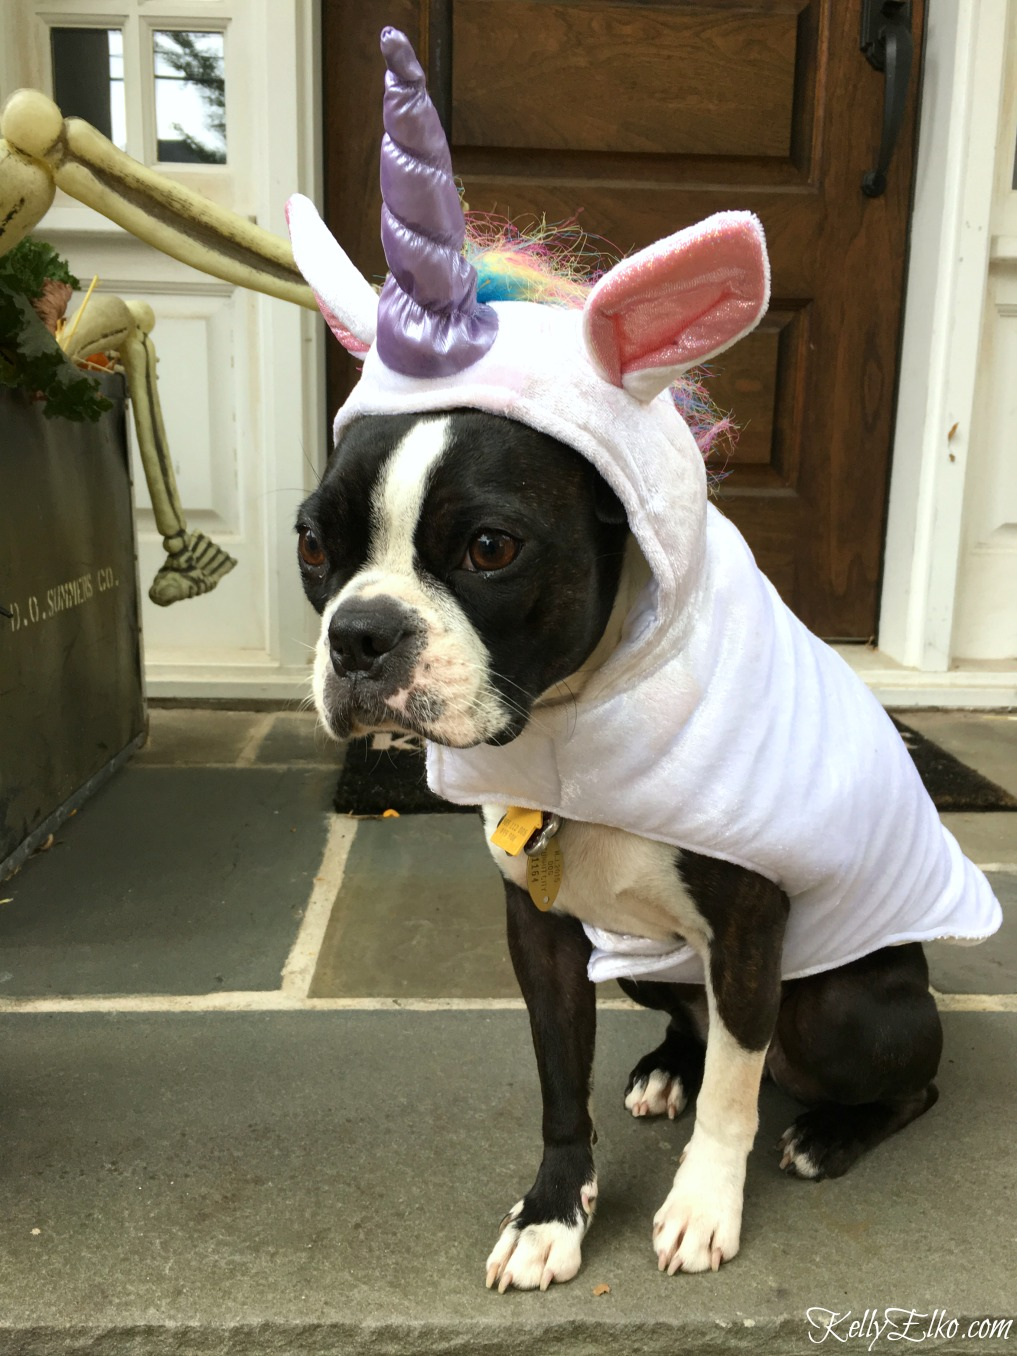 How adorable is this Boston Terrier in a unicorn costume! kellyelko.com